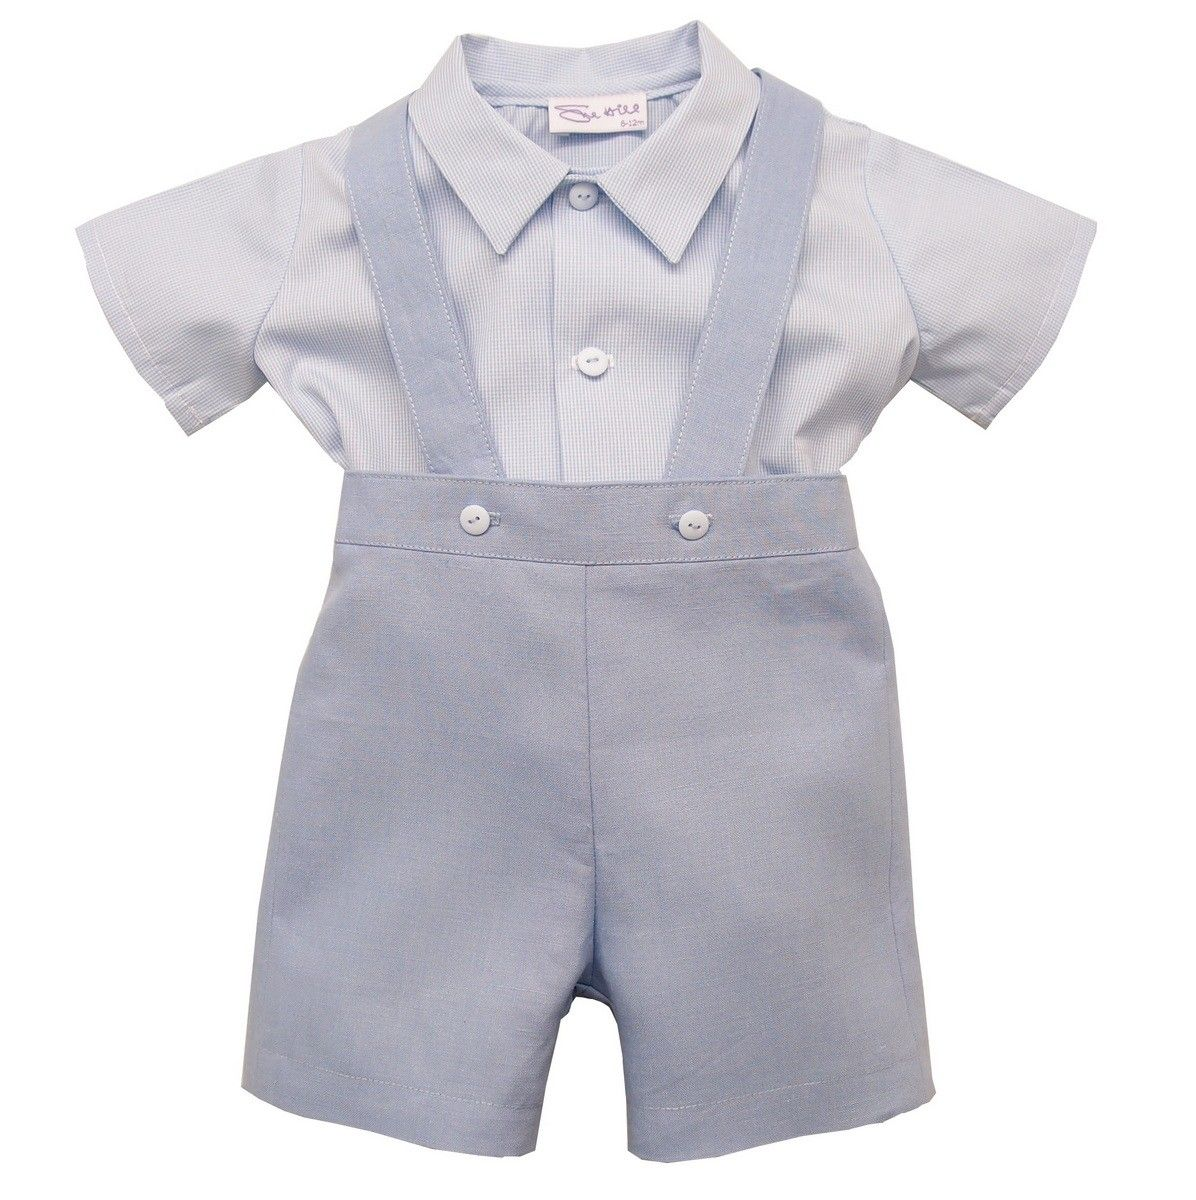 Baby Boy Christening Outfit Linen Suspenders Shorts Romper Bowtie Formal Suit